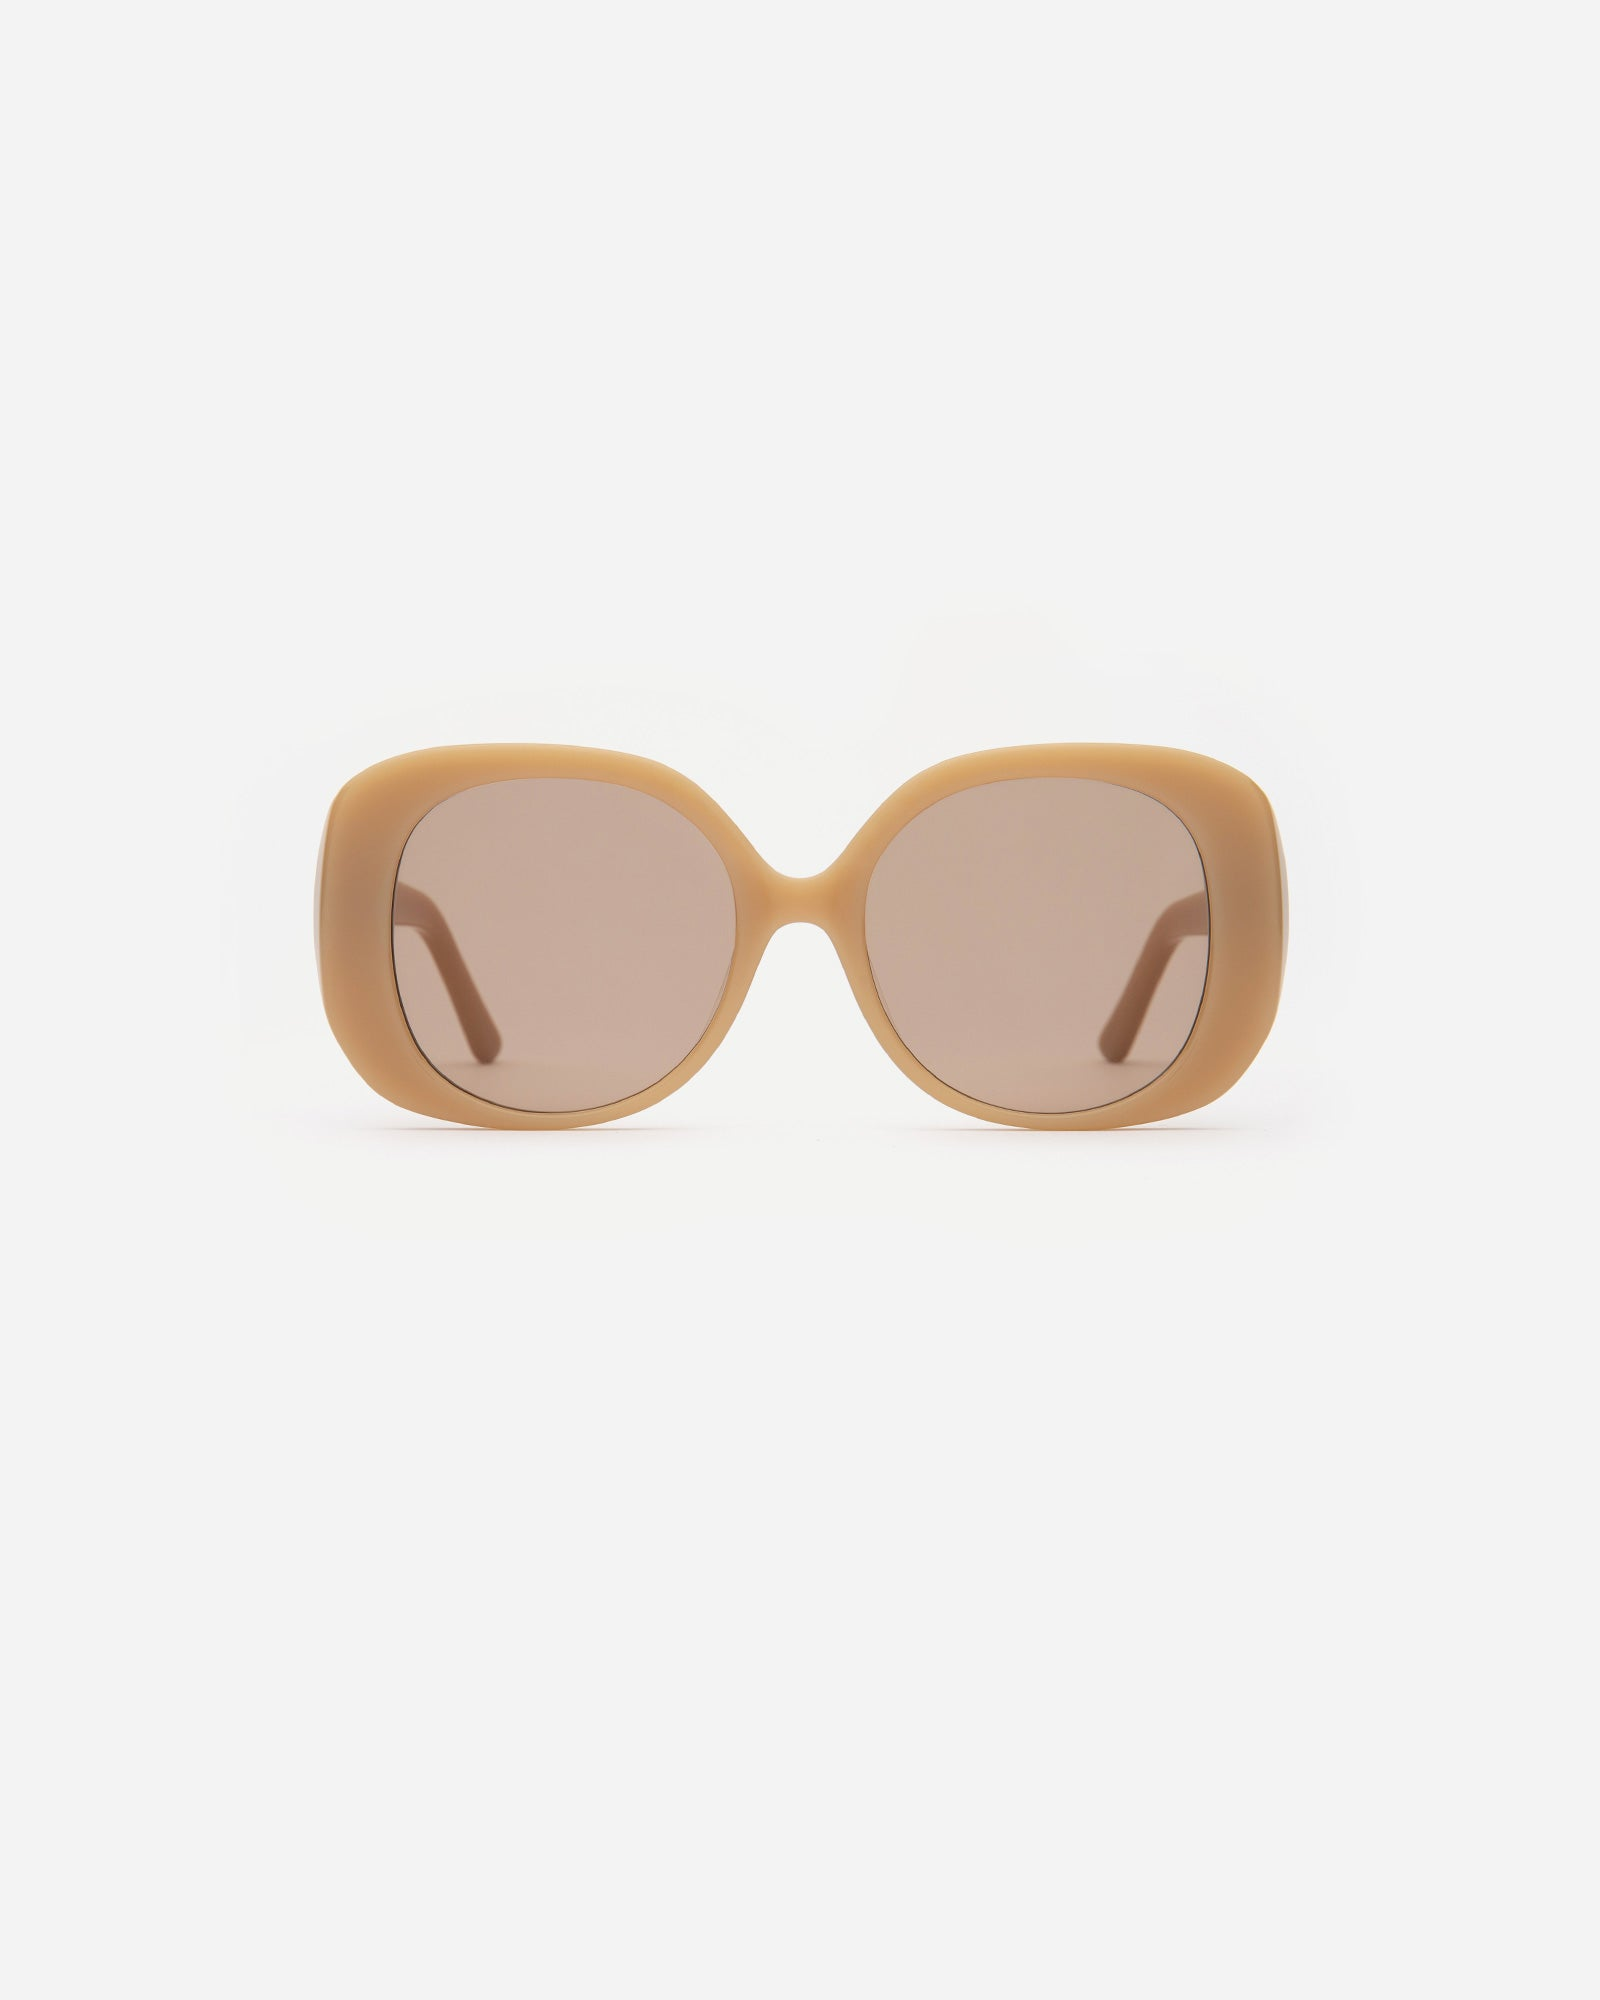 Velvet Canyon The Rendezvous oversize tan beige 60s sunglasses